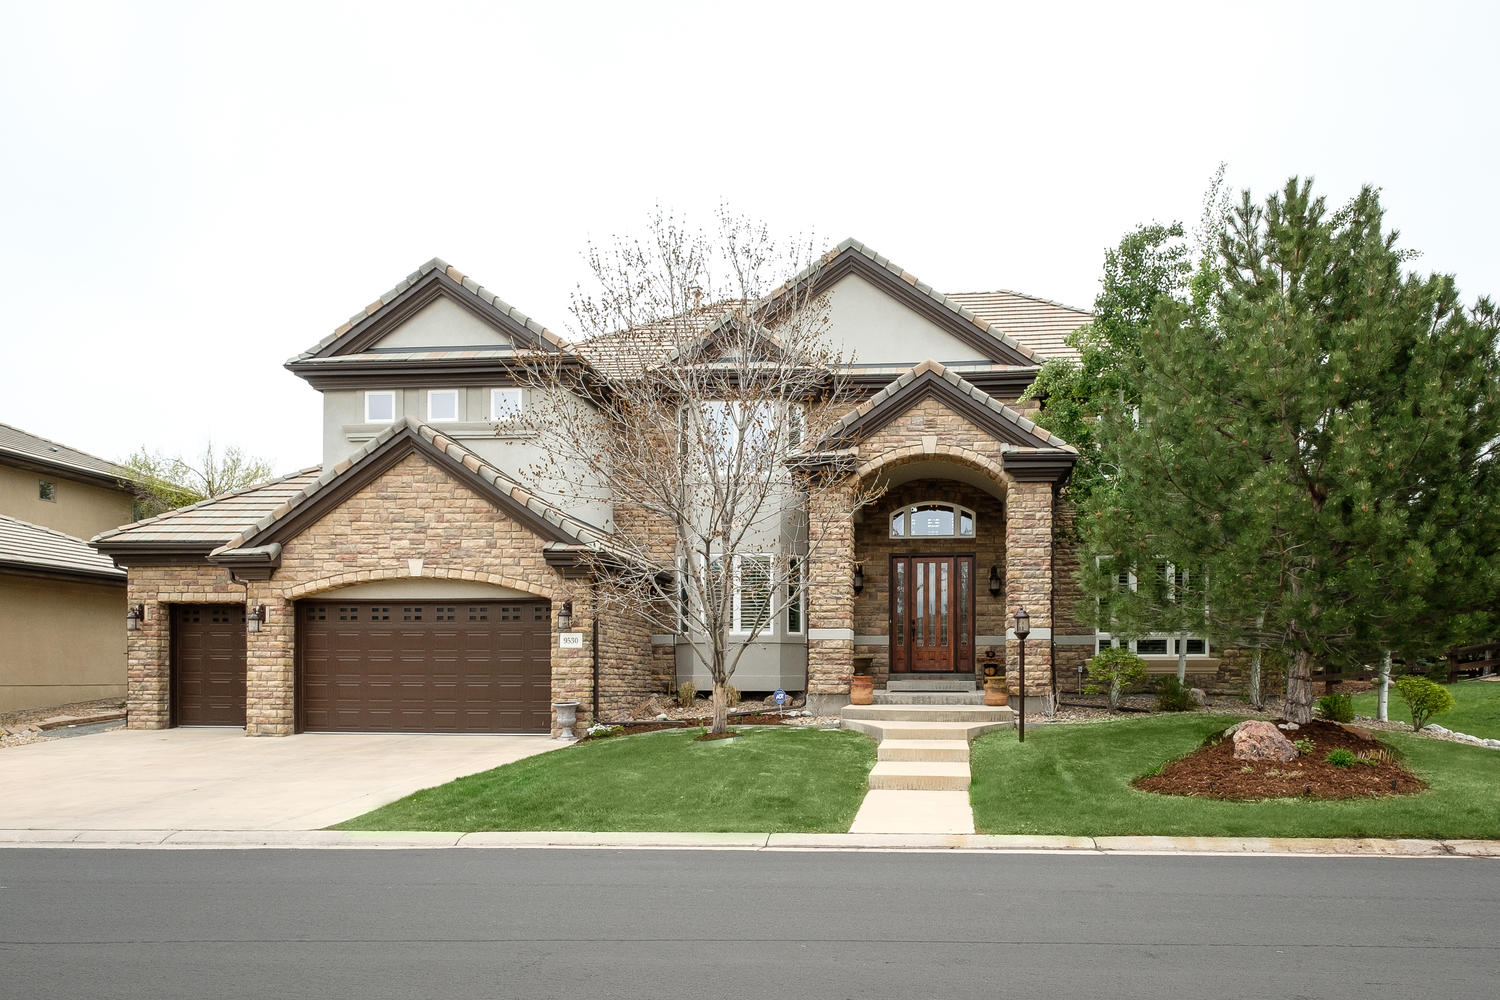 Single Family Home for Sale at Custom craftsmanship and stylish elegance 9530 S Shadow Hill Cir Lone Tree, Colorado, 80124 United States